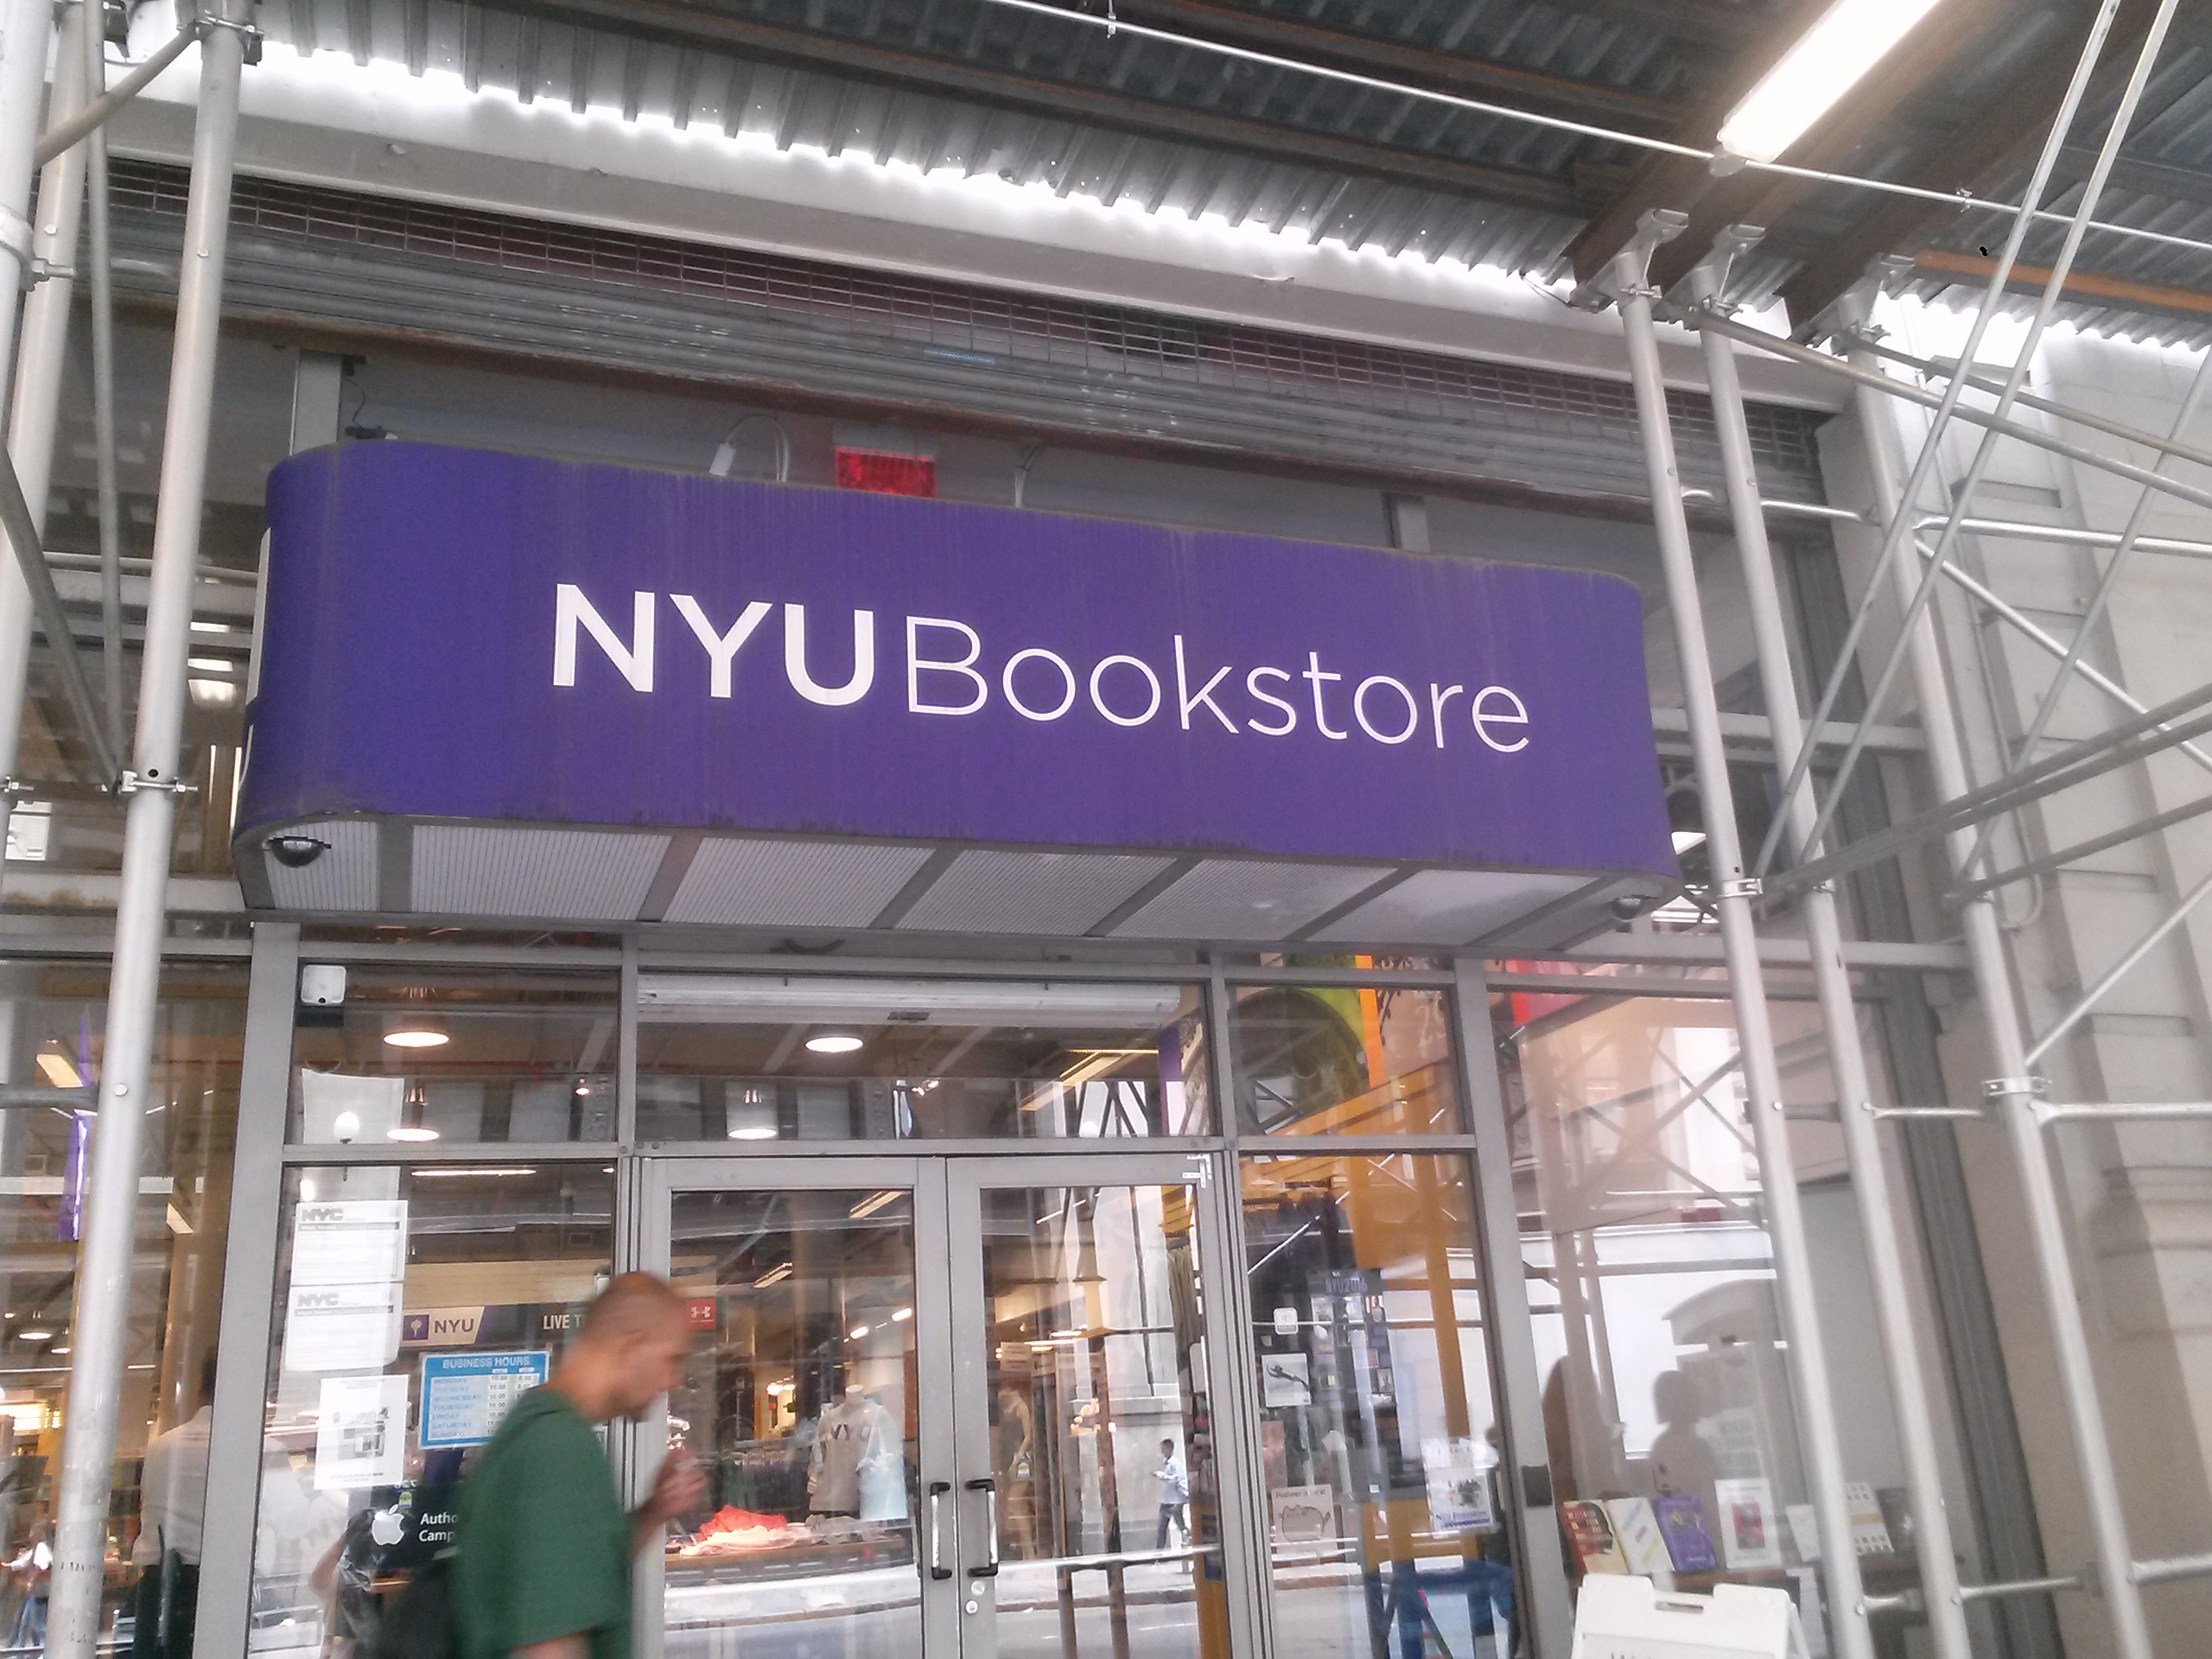 Main NYU Bookstore: 726 Broadway, between Waverly and Washington